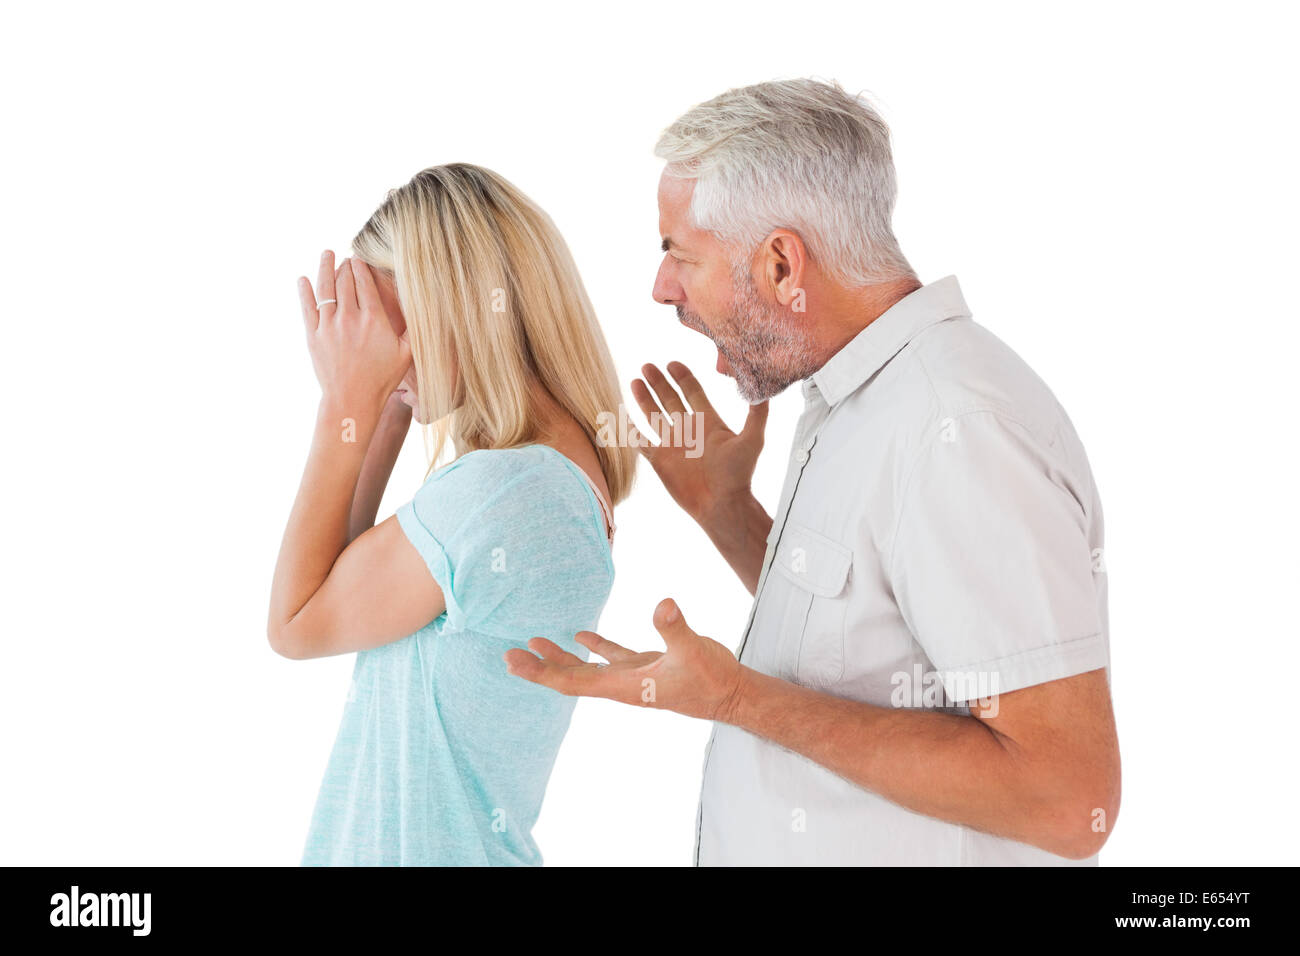 Angry man shouting at his wife - Stock Image